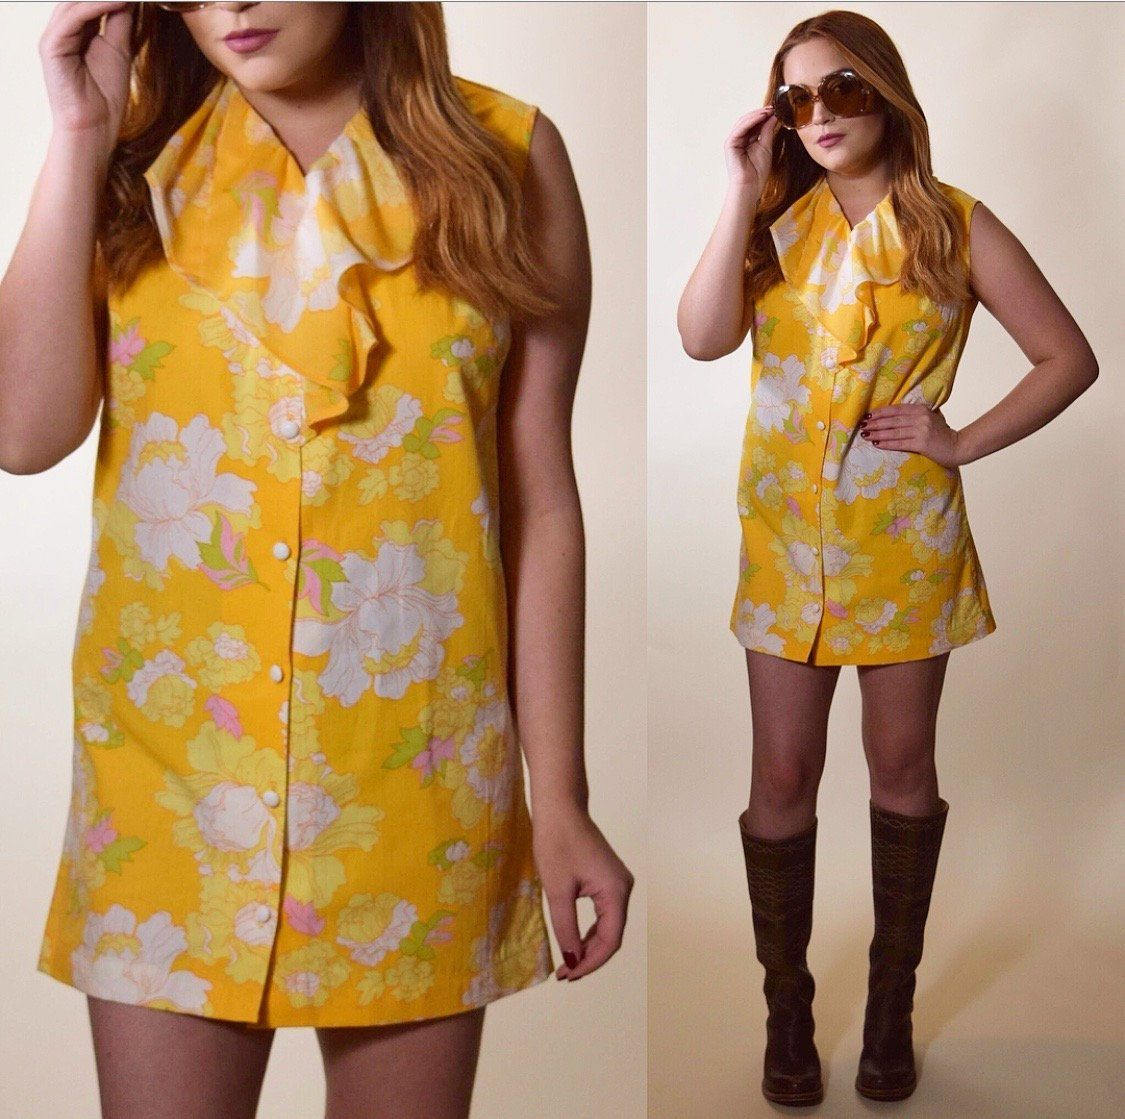 b450ea0b4c7 Classic summer Yellow white floral patterned mini dress! Authentic ...